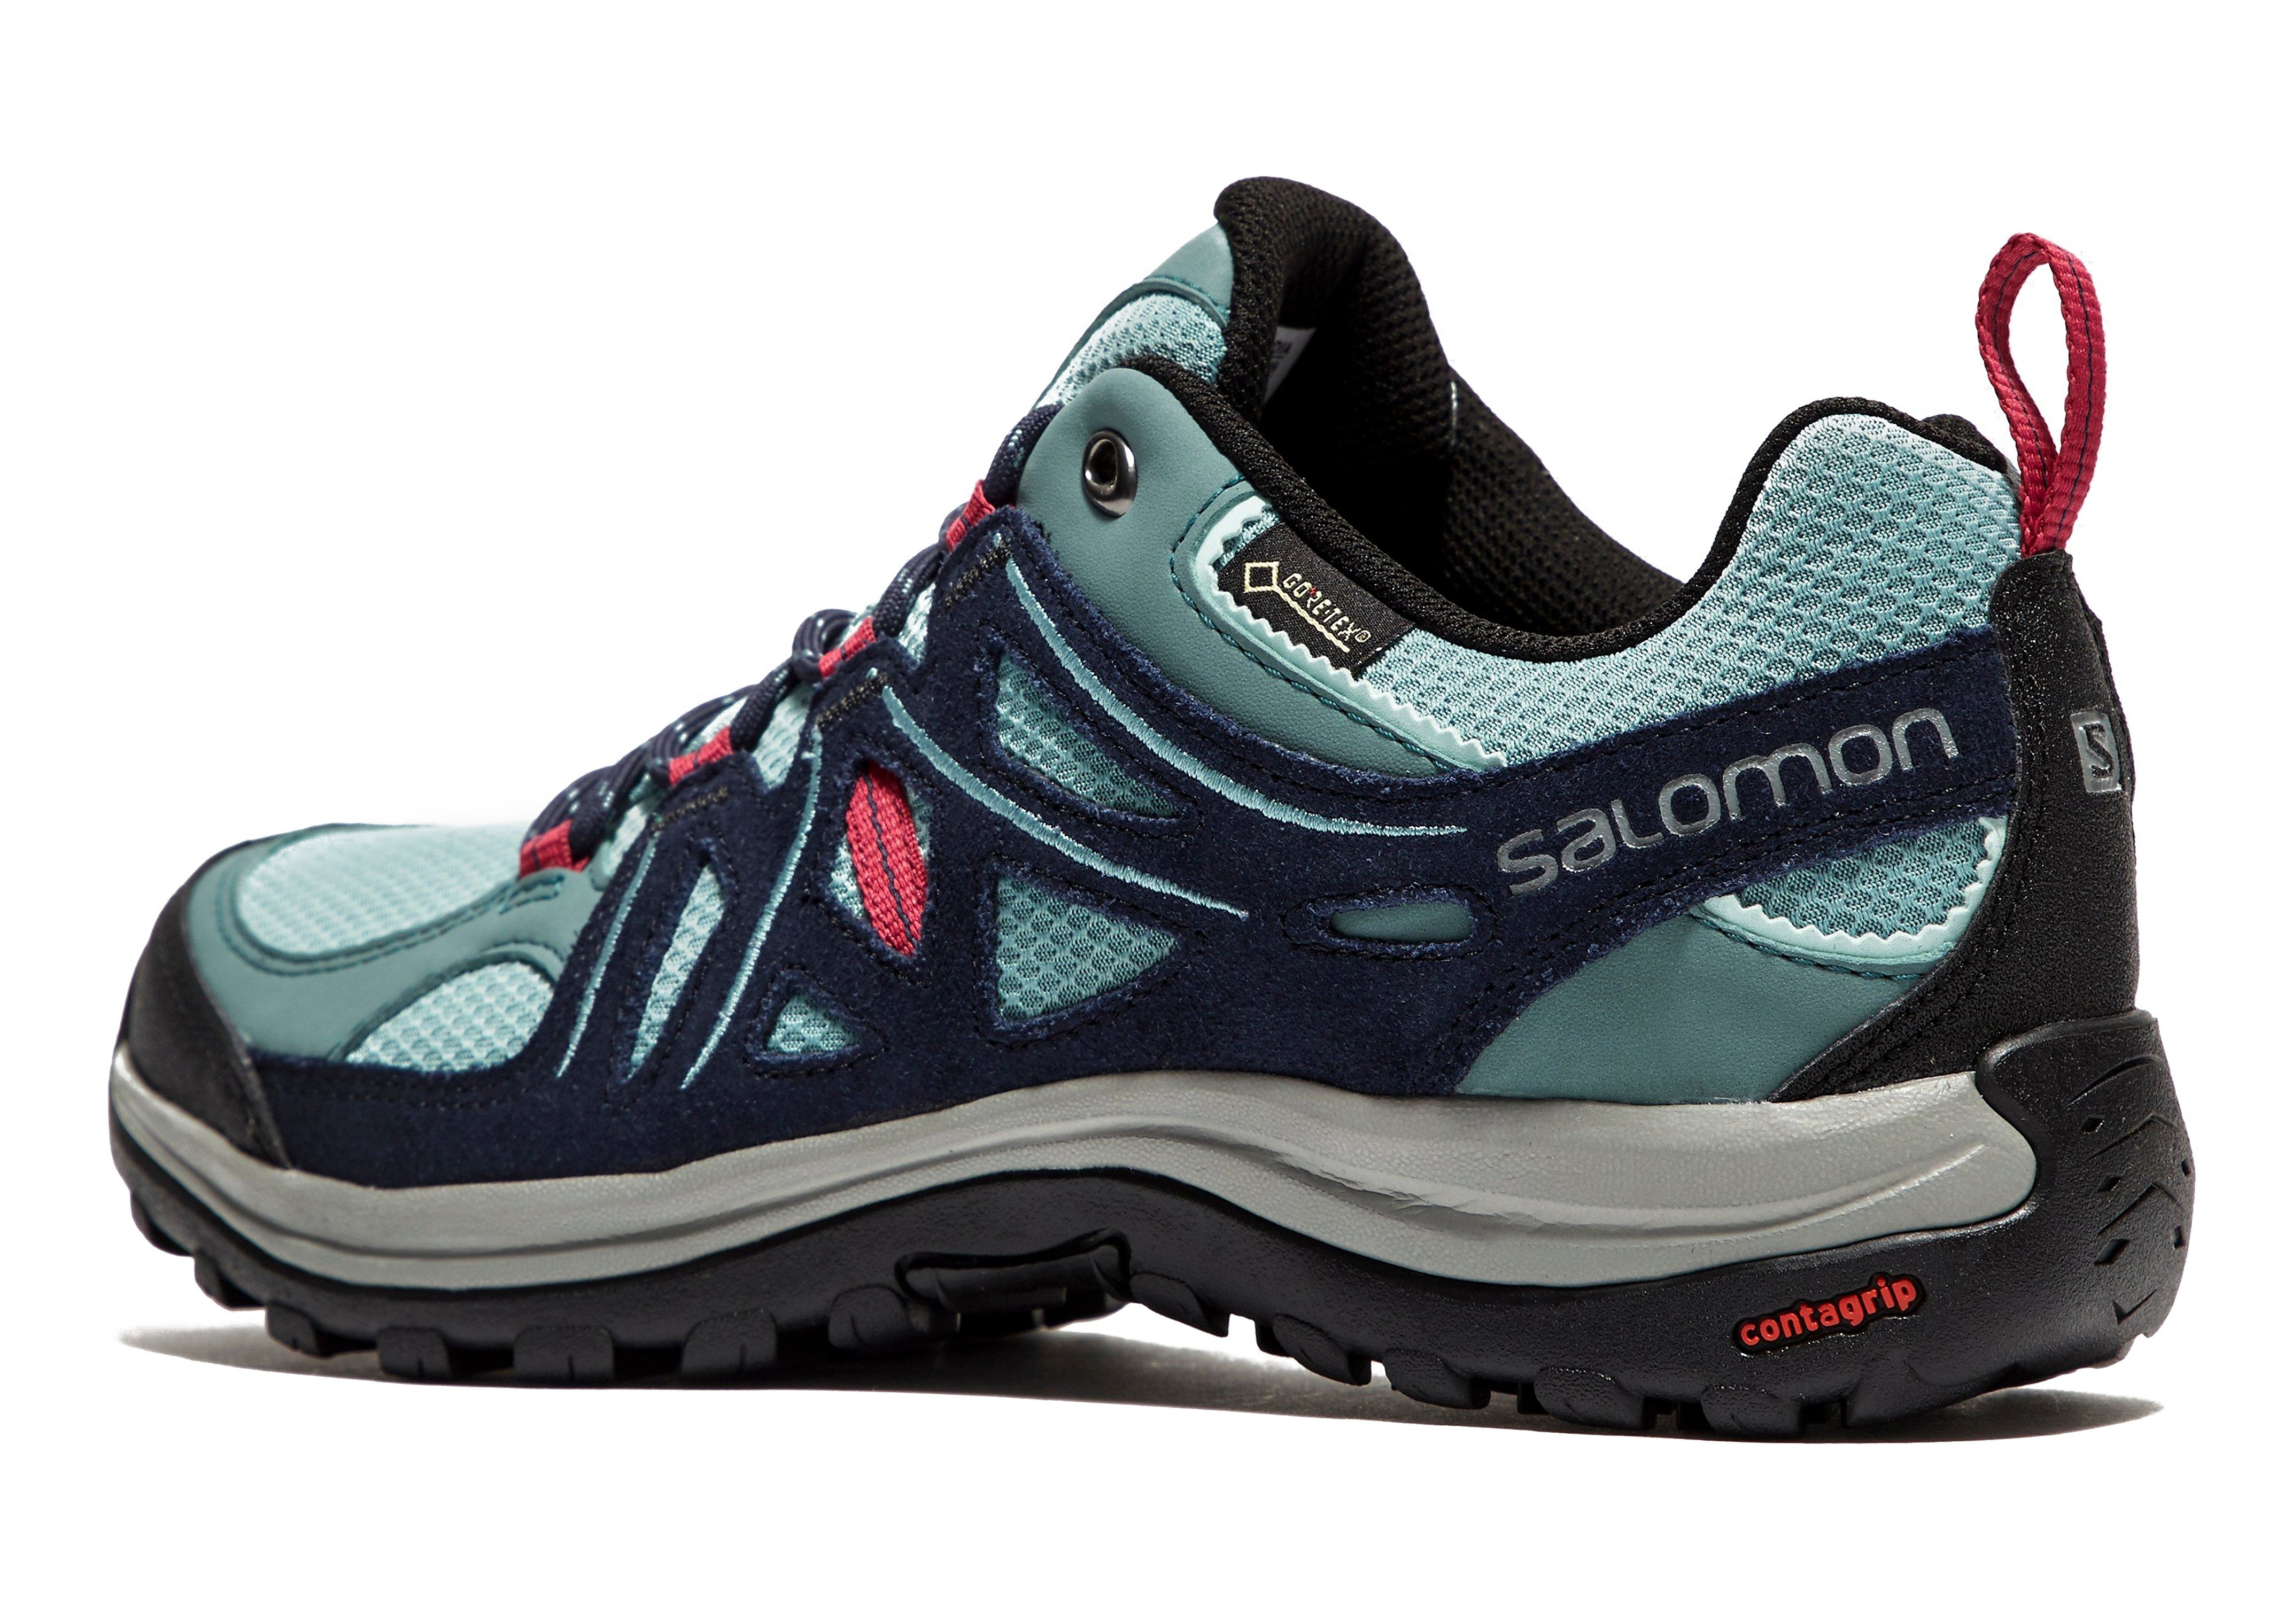 Salomon Ellipse 2 GTX Women's Hiking Shoes